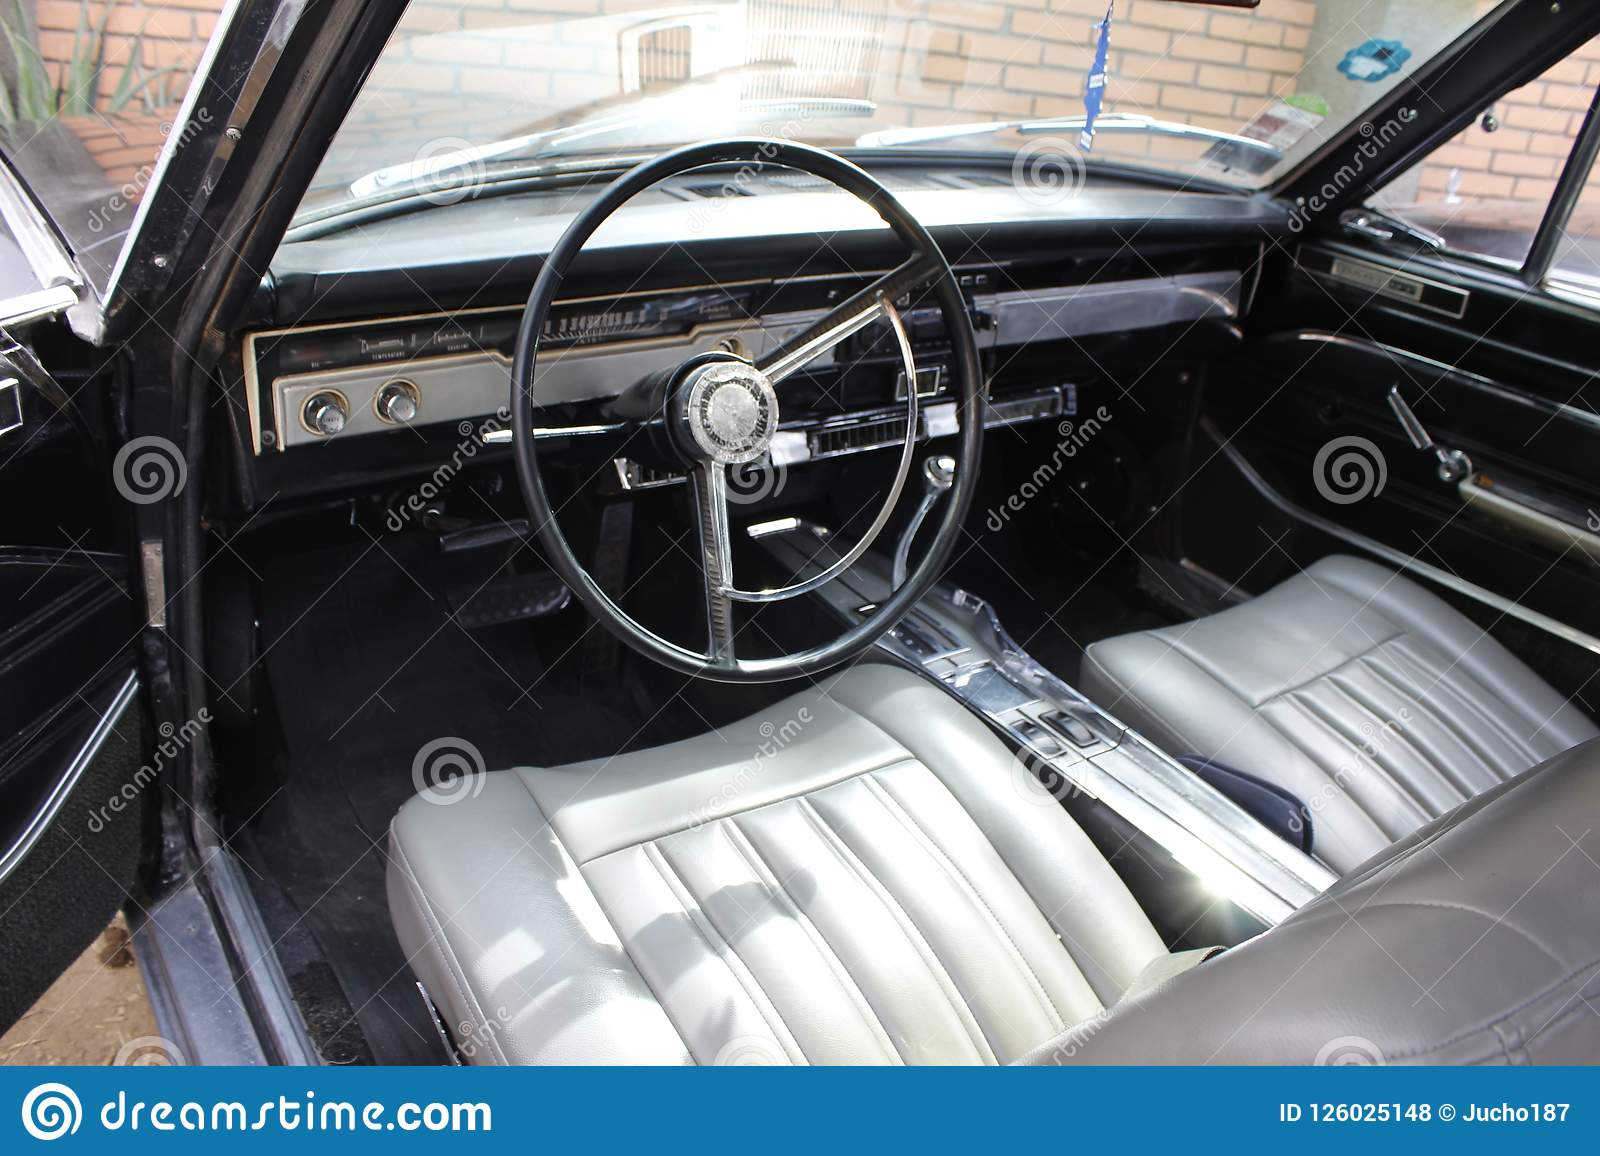 251 Classic Dart Photos Free Royalty Free Stock Photos From Dreamstime